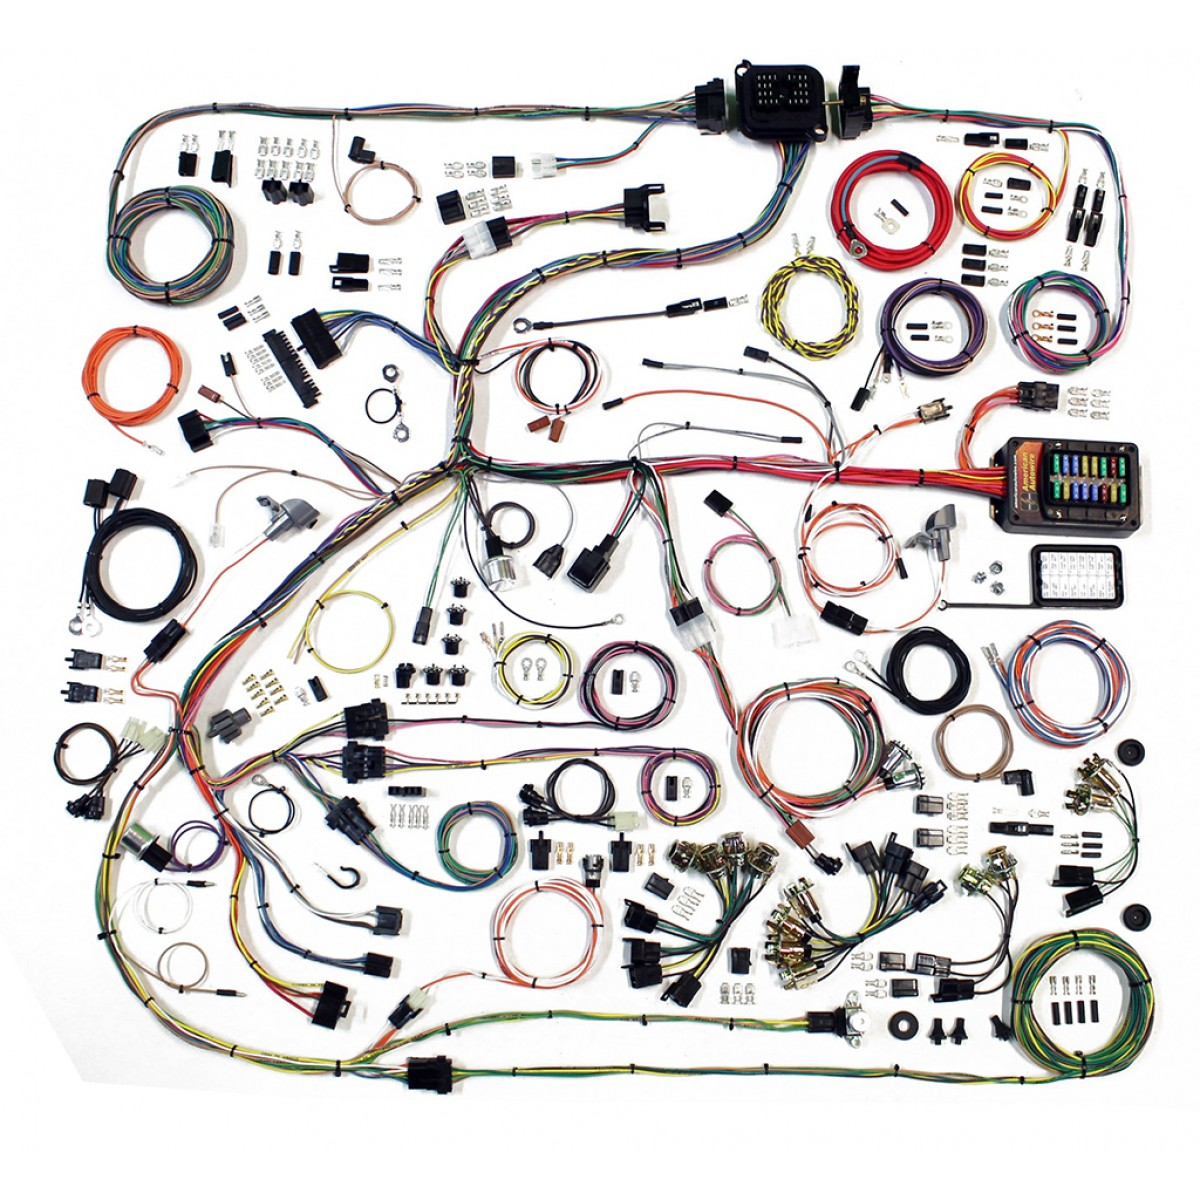 1968 Plymouth Road Runner Wiring Harness Books Of Diagram Roadrunner Fuse Box Complete Kit 70 Satellite Rh Code510 Com